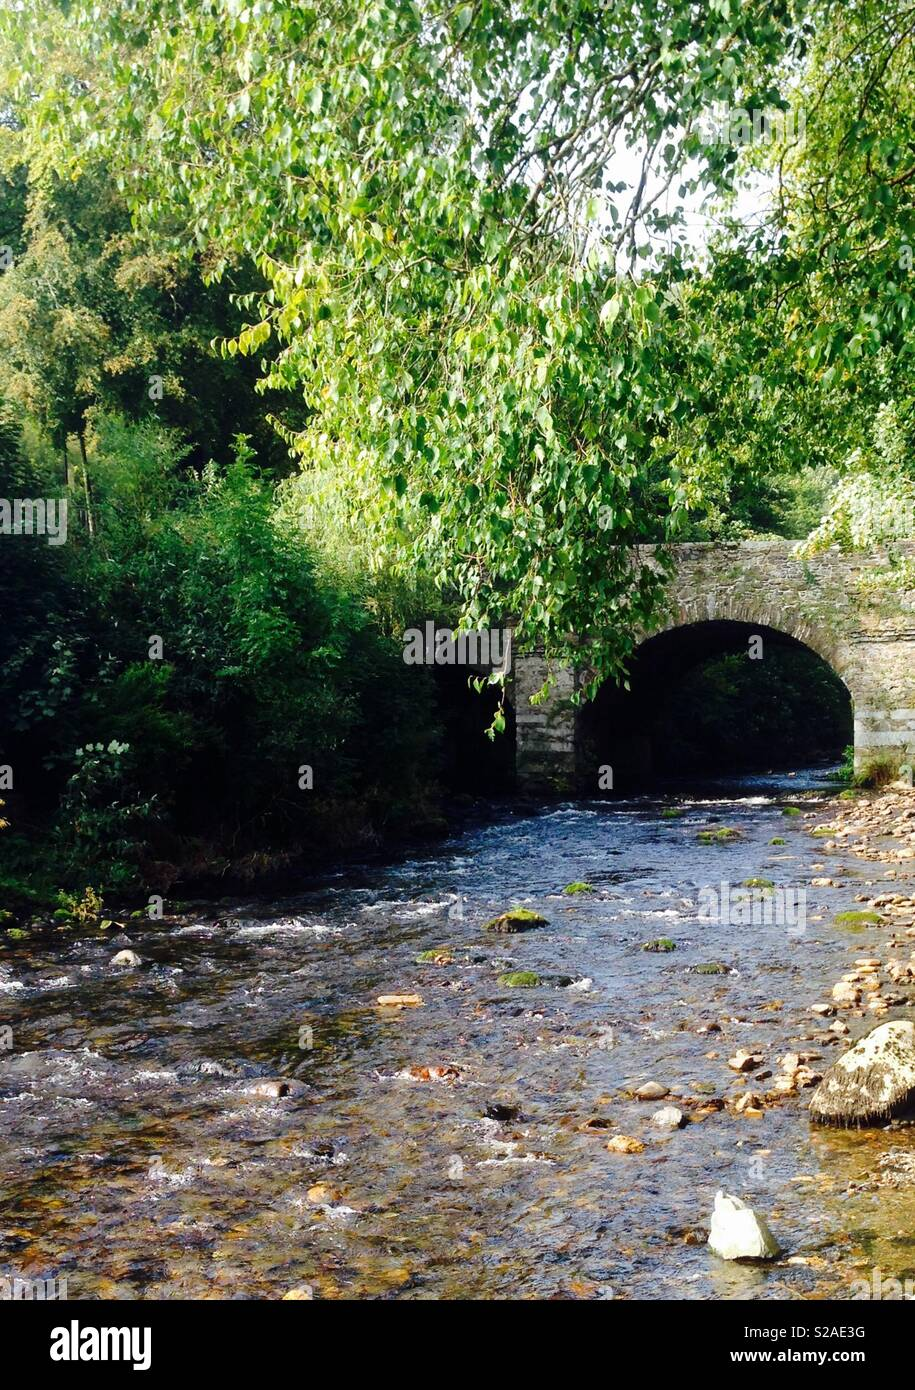 Sunlight shimmering on an enchanting, rocky river as it flows under an old stone bridge surrounded by trees.  Taken in Ireland - Stock Image